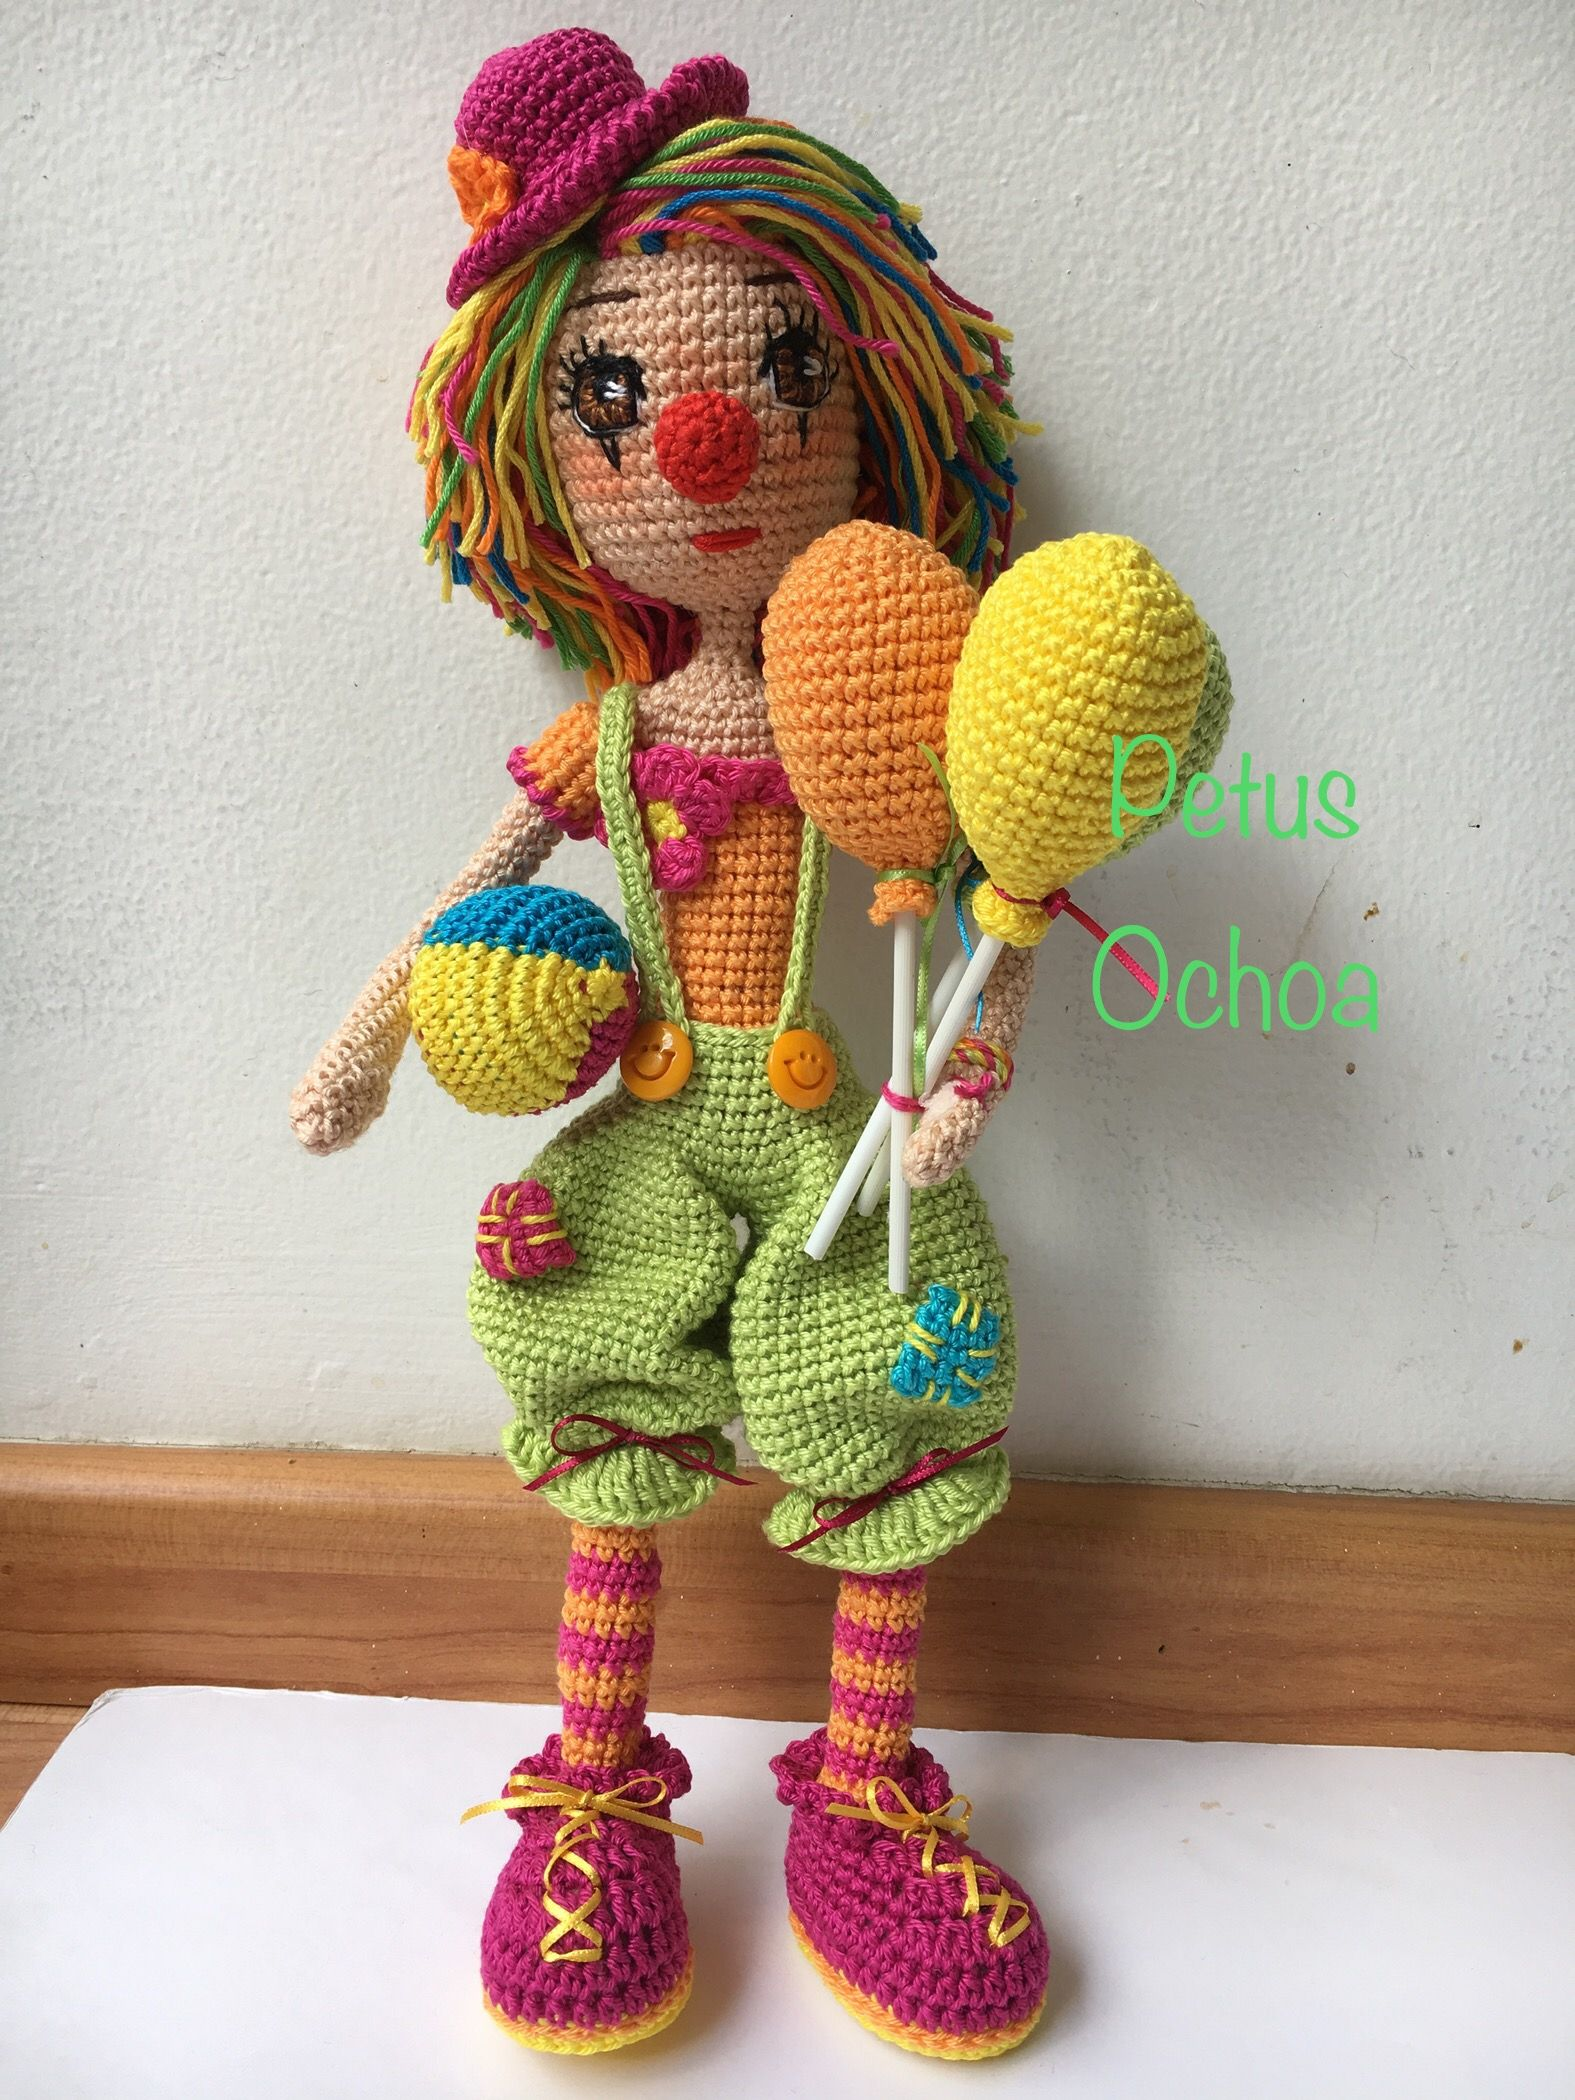 Payasa amigurumis By Petus | Ganchillo | Pinterest | Patrones ...